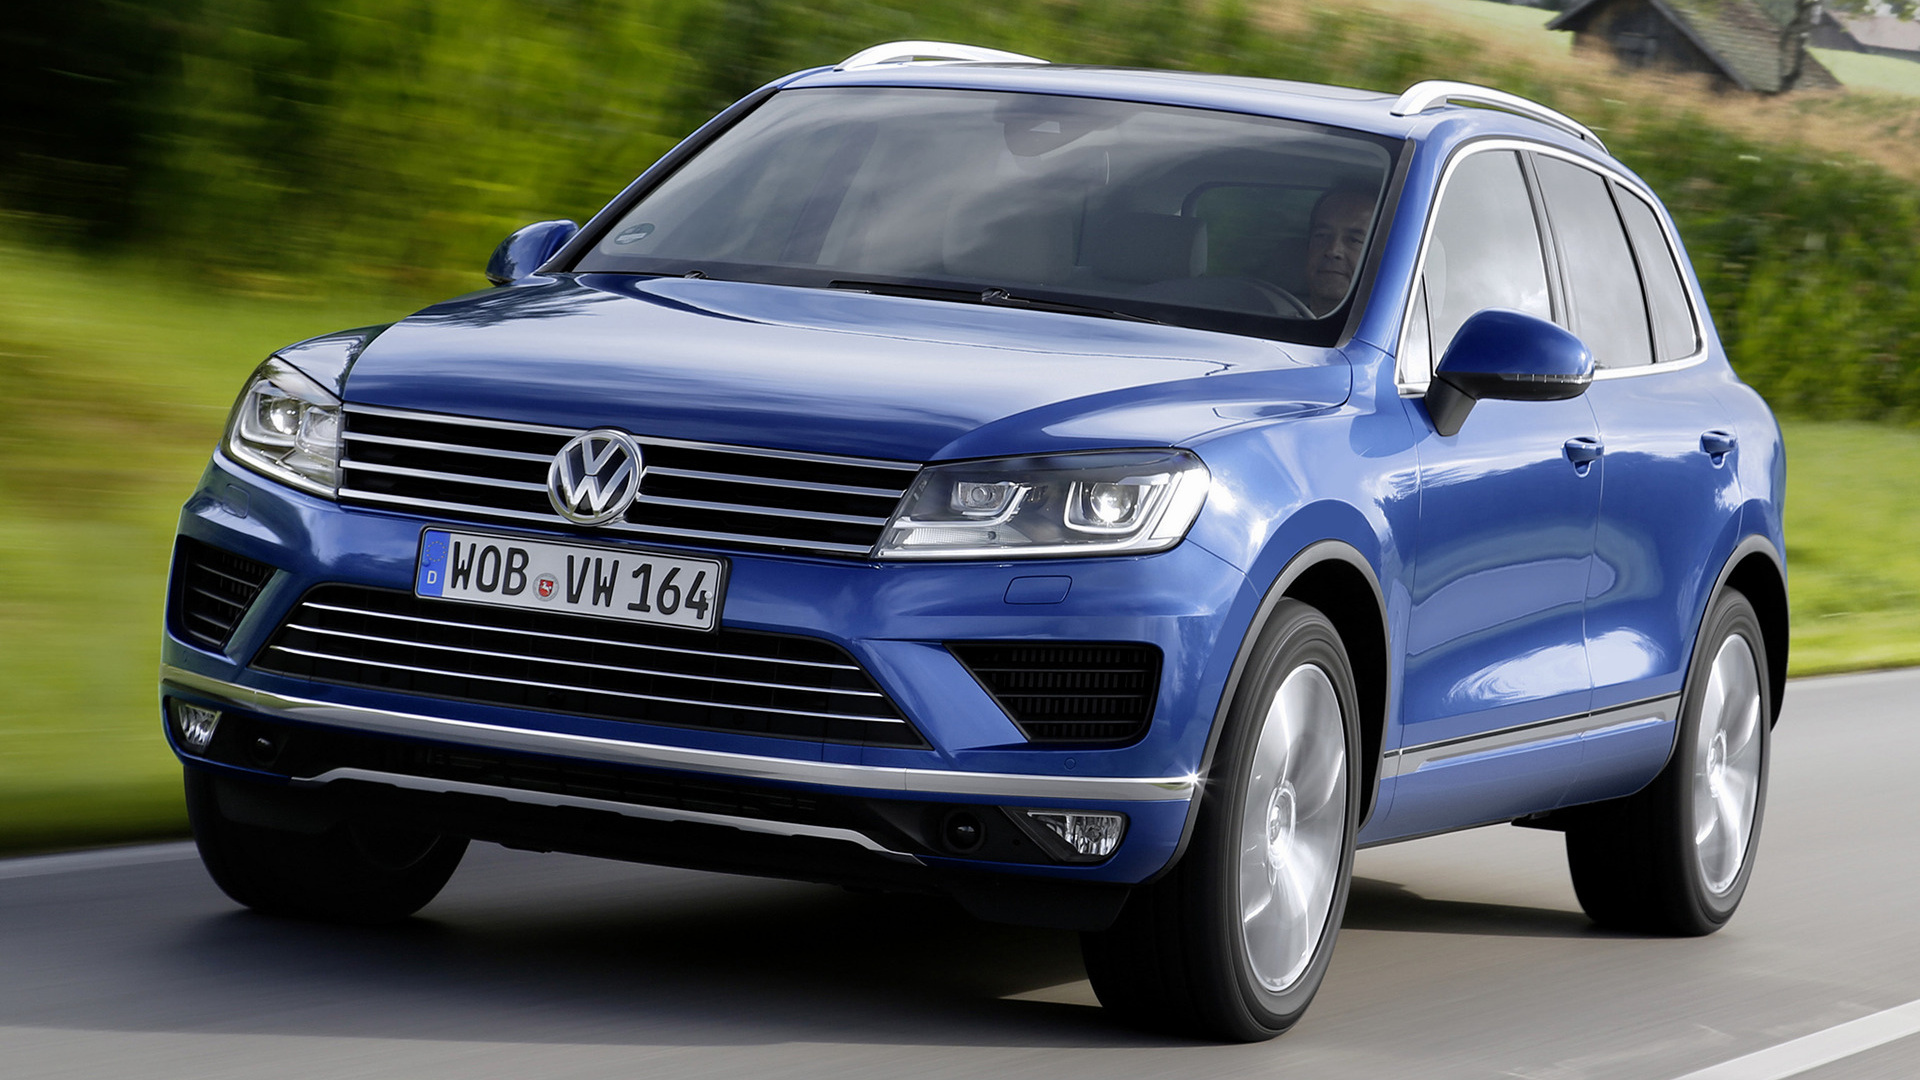 2014 Volkswagen Touareg   Wallpapers and HD Images Car Pixel 1920x1080